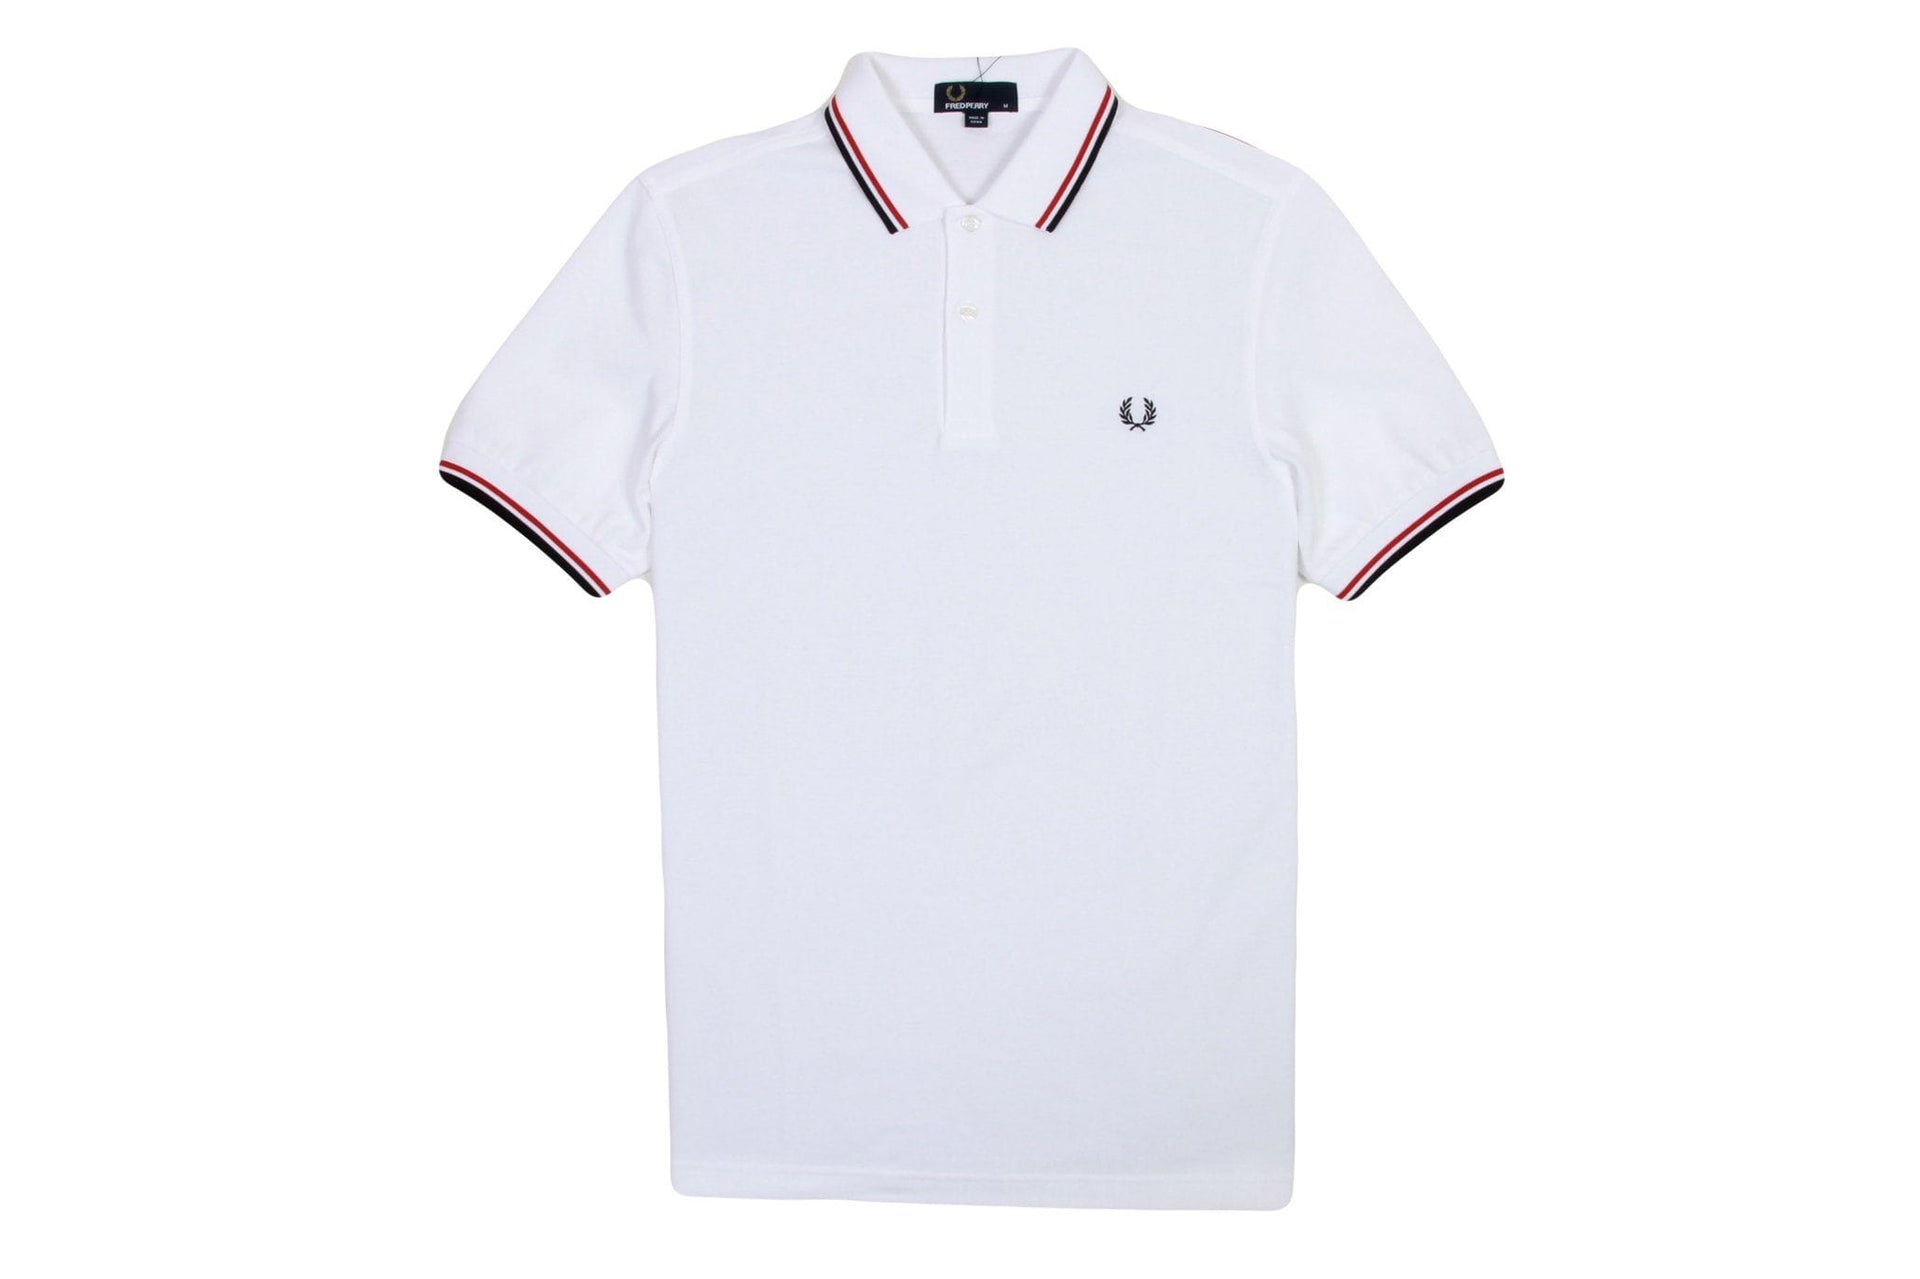 TWIN TIPPED SHIRT FRED PERRY NRML MEN MAN MENS